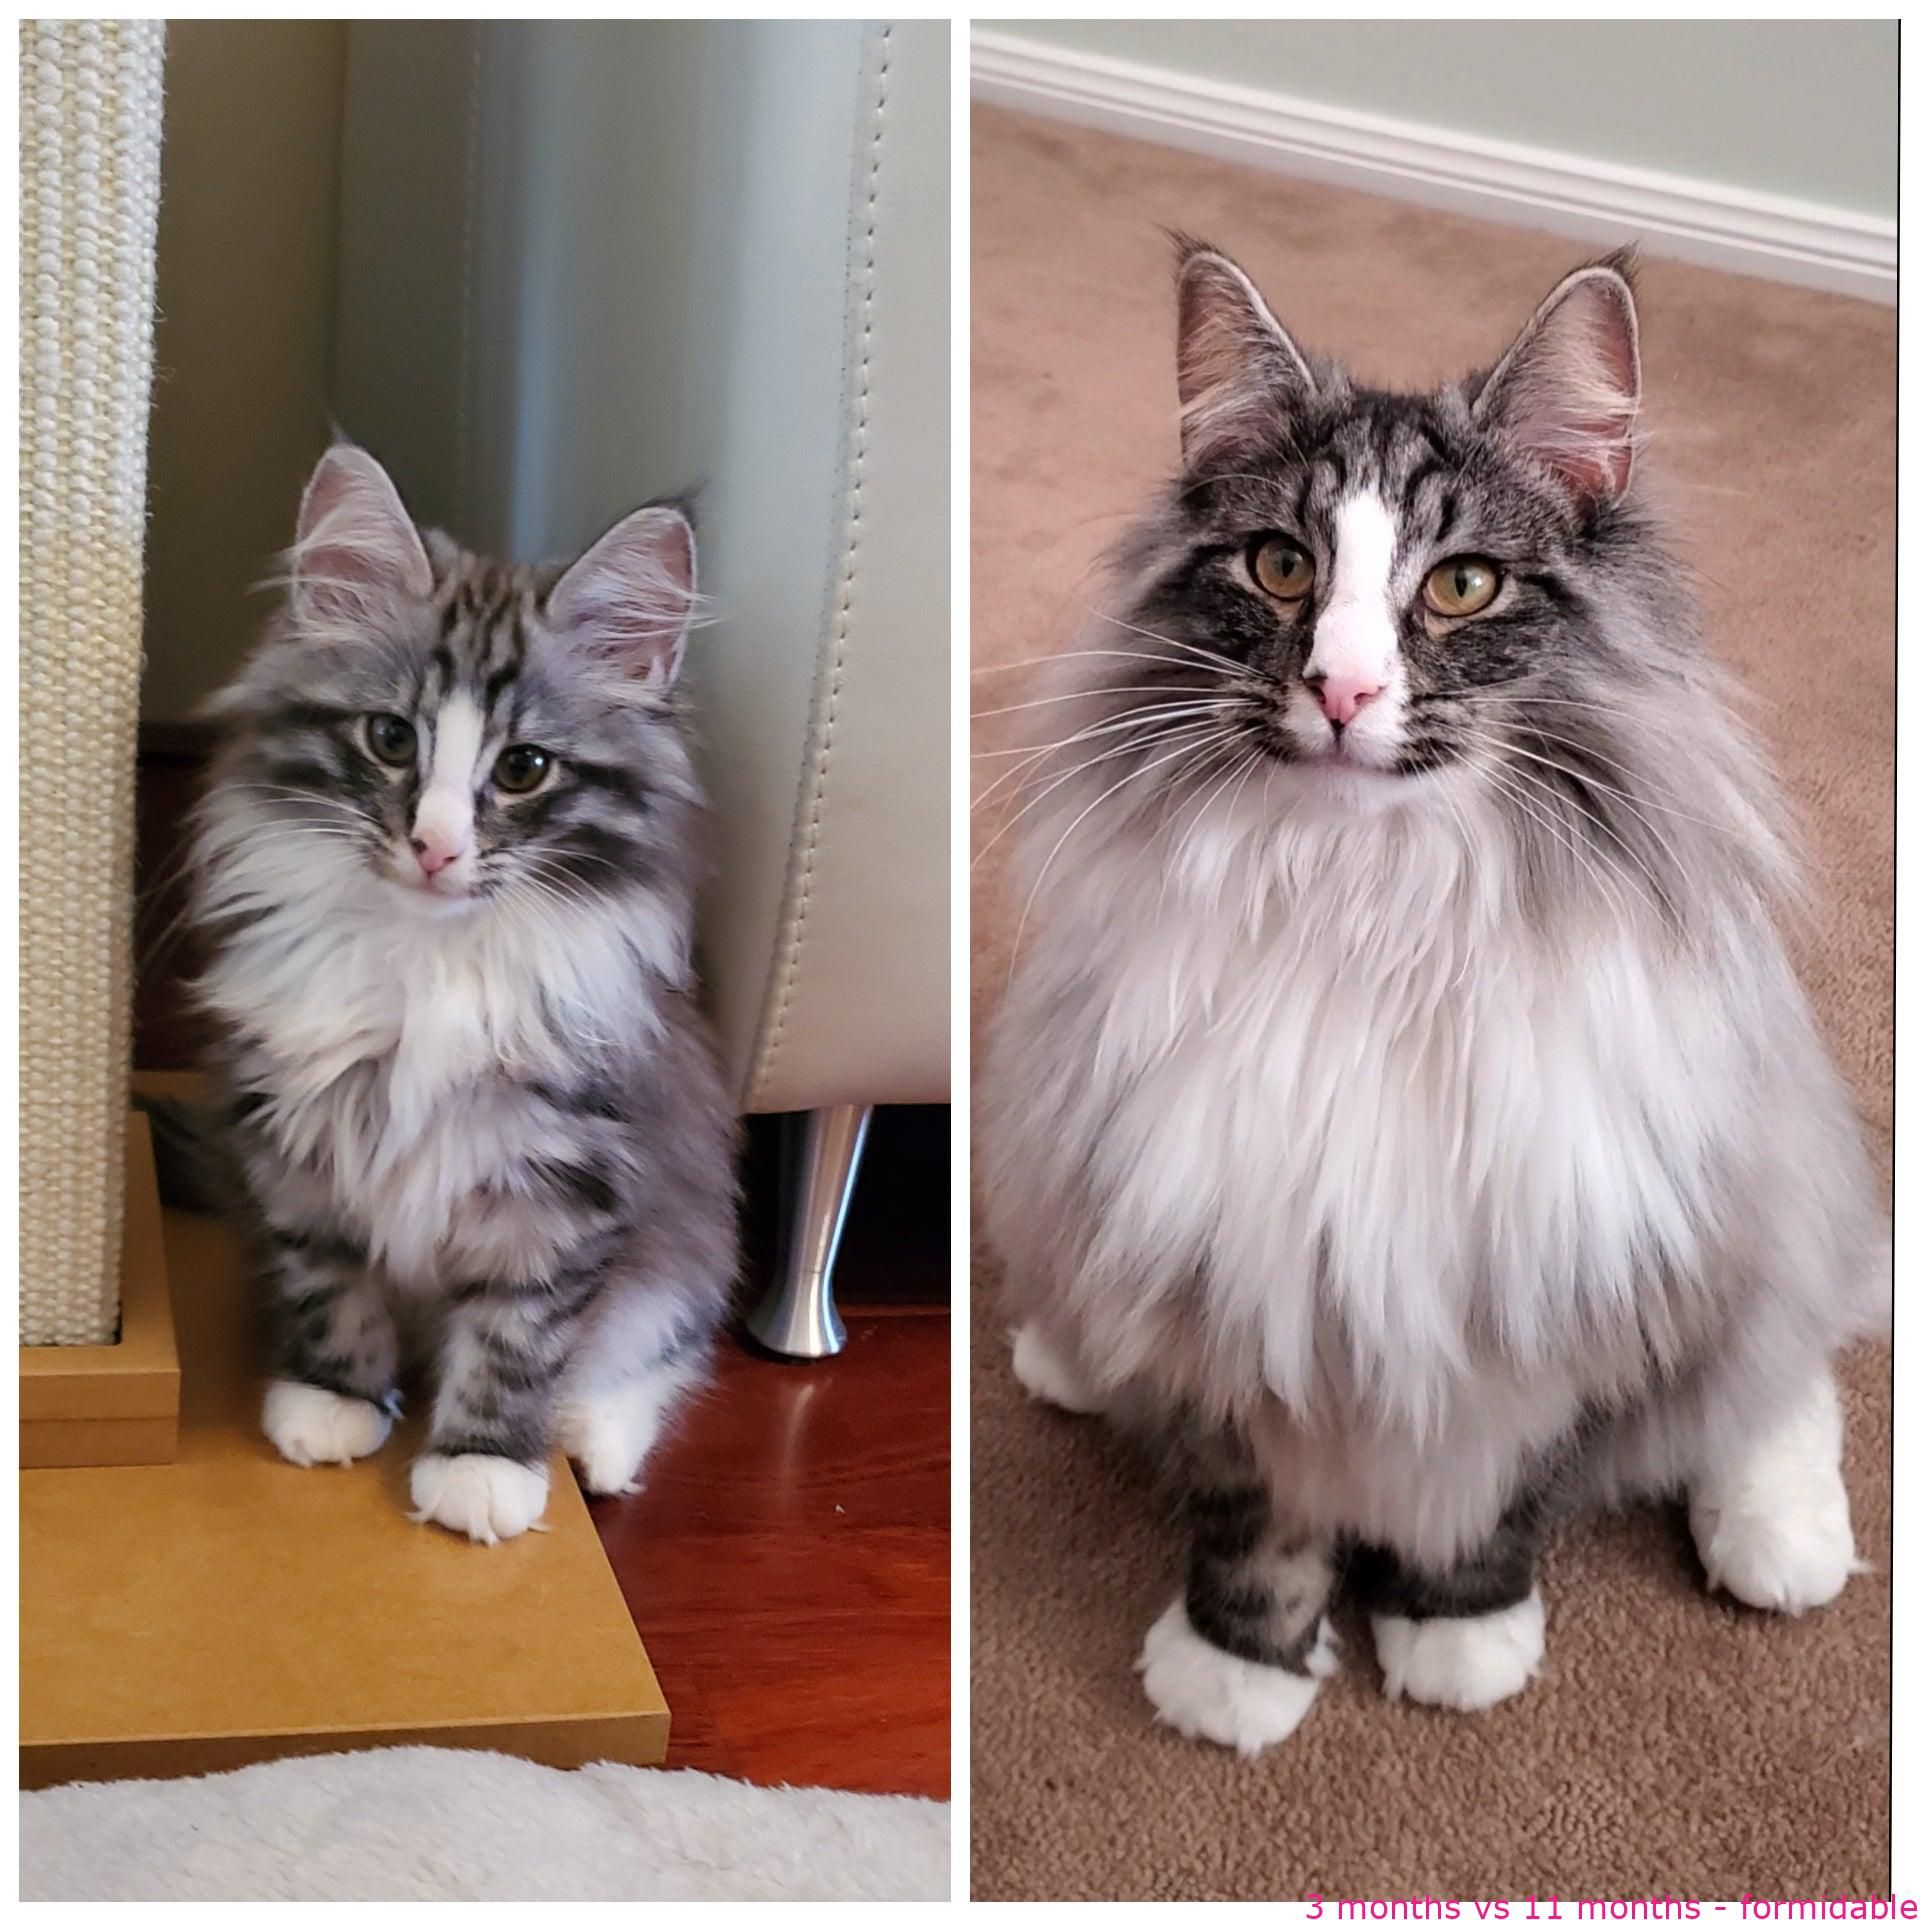 Cats 3 Months Vs 11 Months Formidable In 2020 Cute Cats And Kittens Cats Beautiful Cat